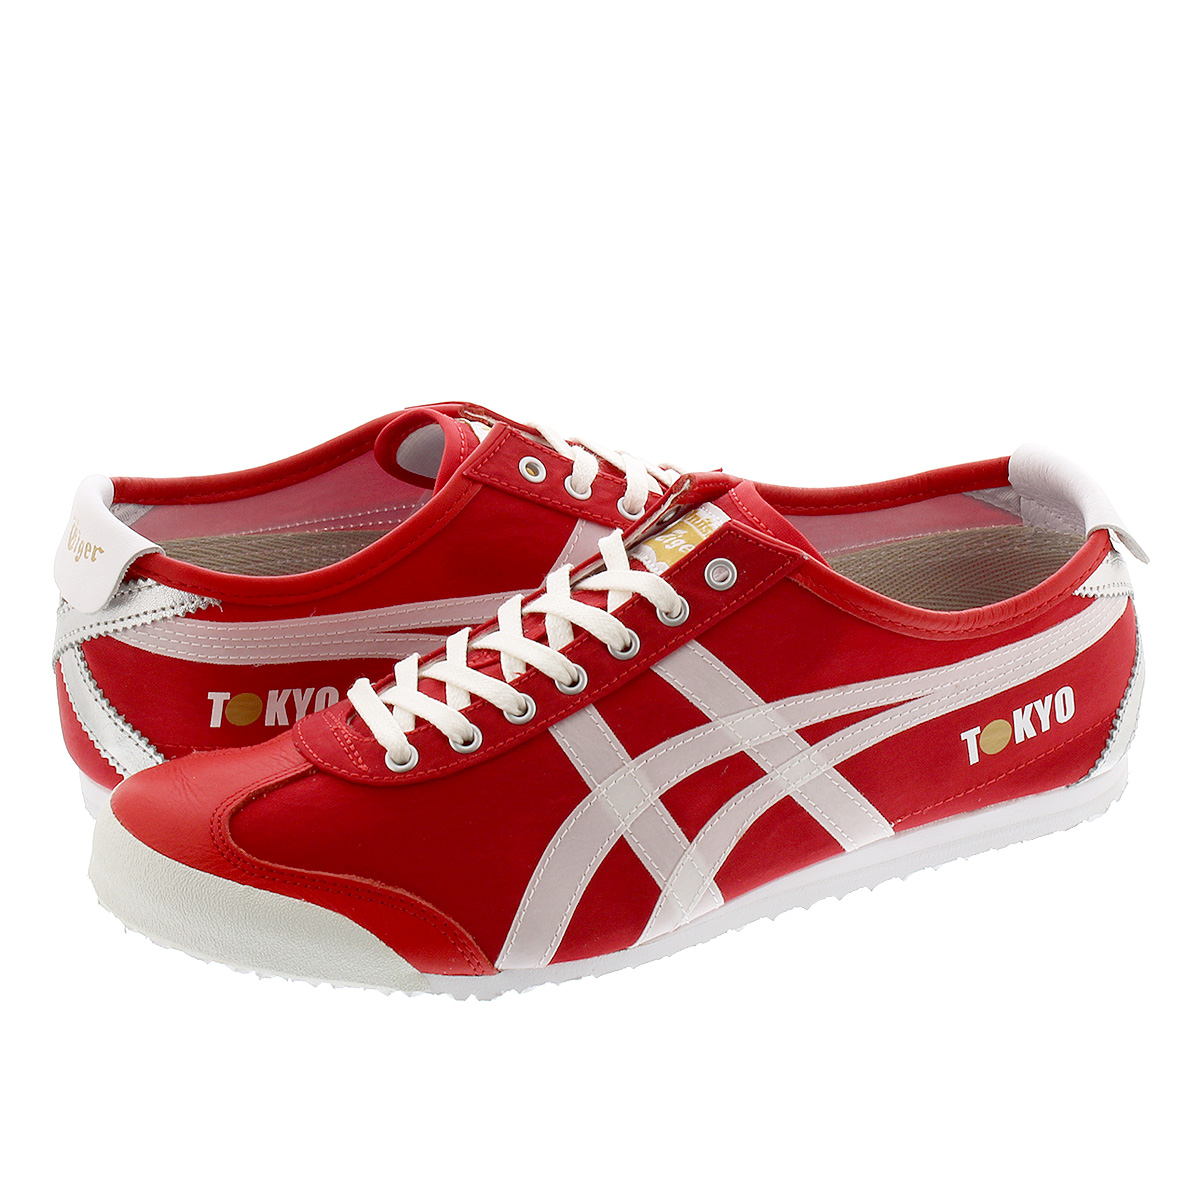 Onitsuka Tiger MEXICO 66 オニツカタイガー メキシコ 66 CLASSIC RED/WHITE 1183a730-600